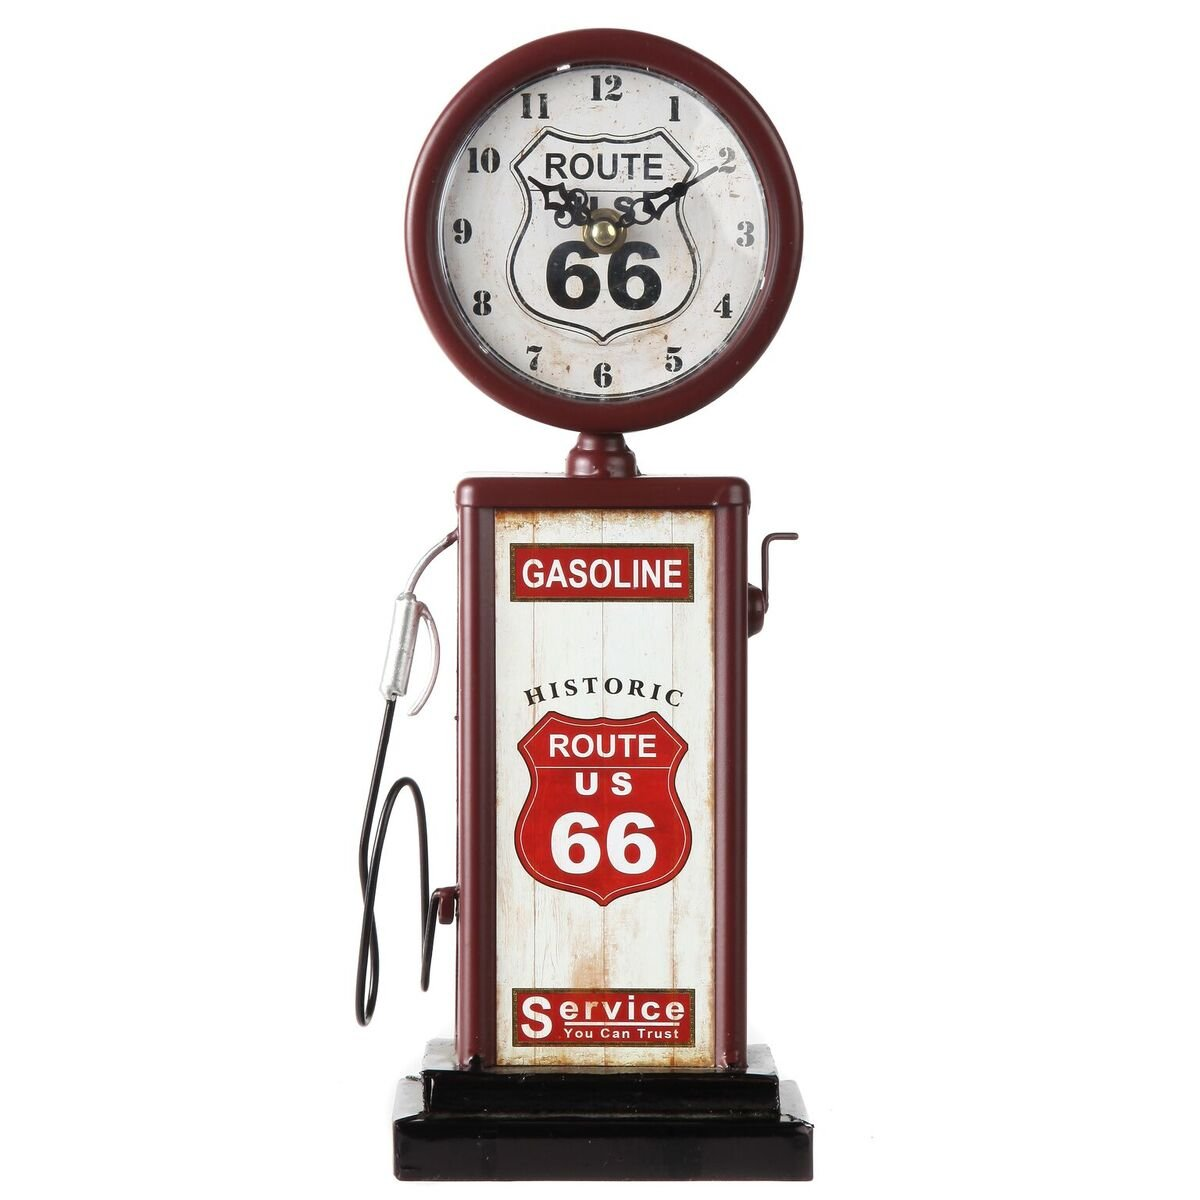 "Lily's Home Old Fashioned Route 66 Gas Pump Mantle Clock, Battery Powered with Quartz Movement, Makes an Ideal Gift for Antique Sign Collectors, Brown/Red (13 1/2"" x 4 3/4"")"